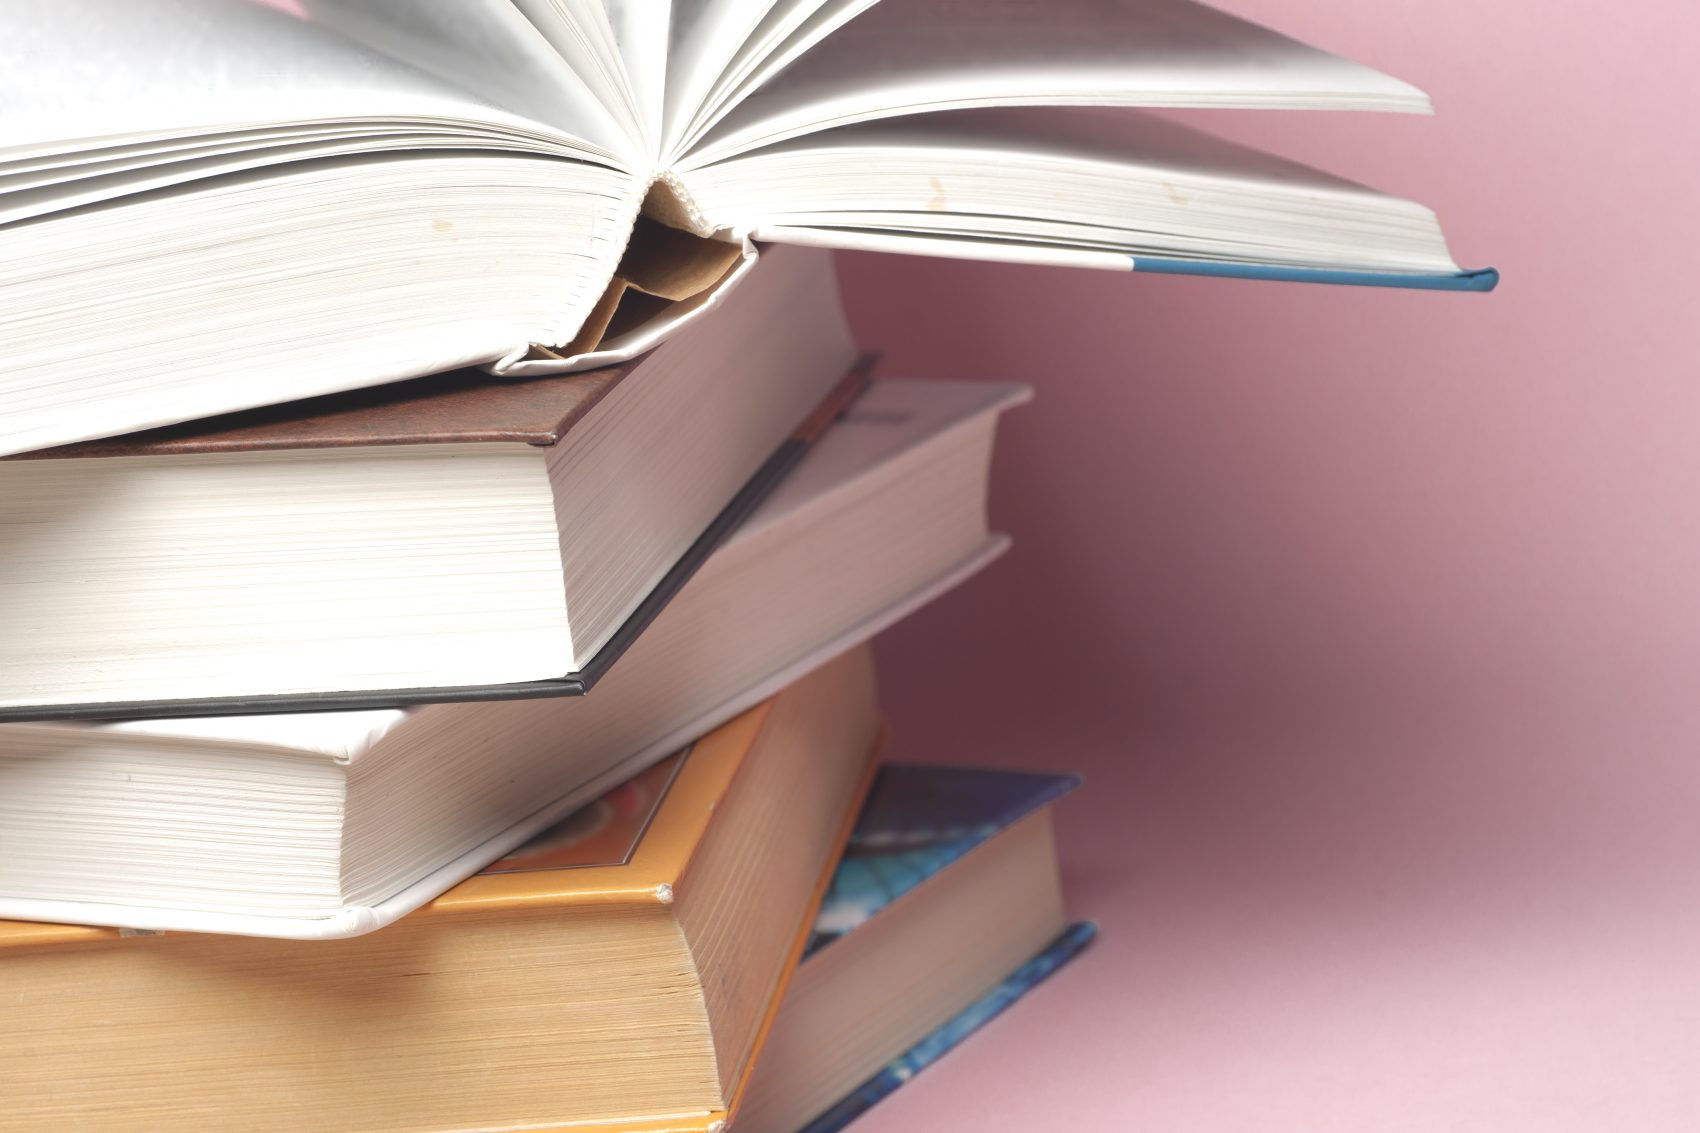 Find Book Publishers and Agents